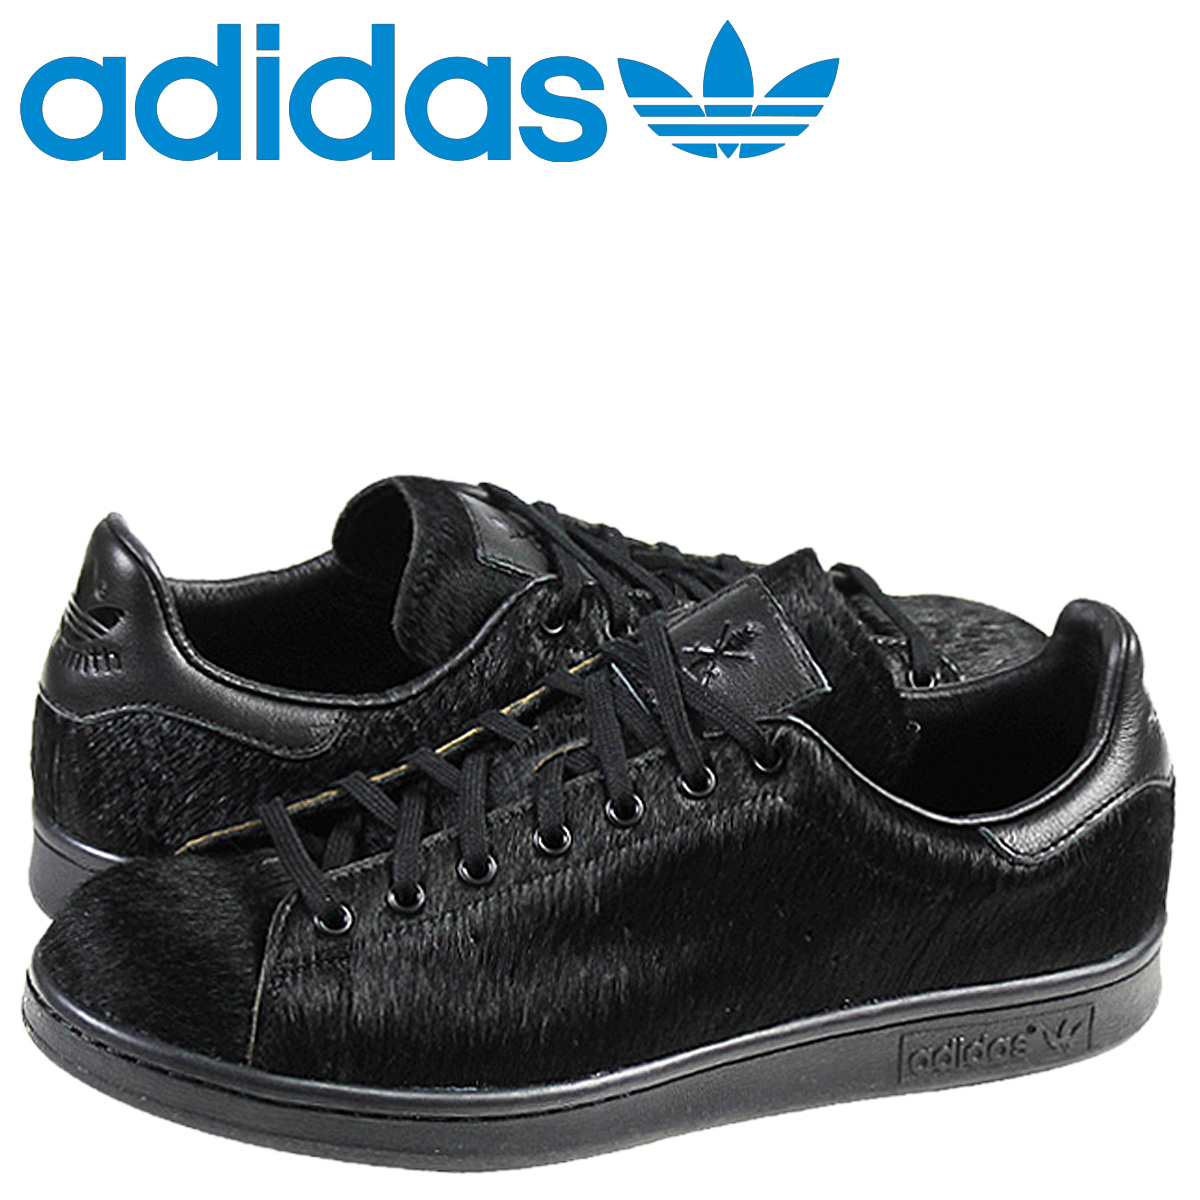 Adidas originals adidas Originals×OPENING CEREMONY STAN SMITH sneakers Stan Smith Huracan men's women's collaboration with B35645 black unisex [11